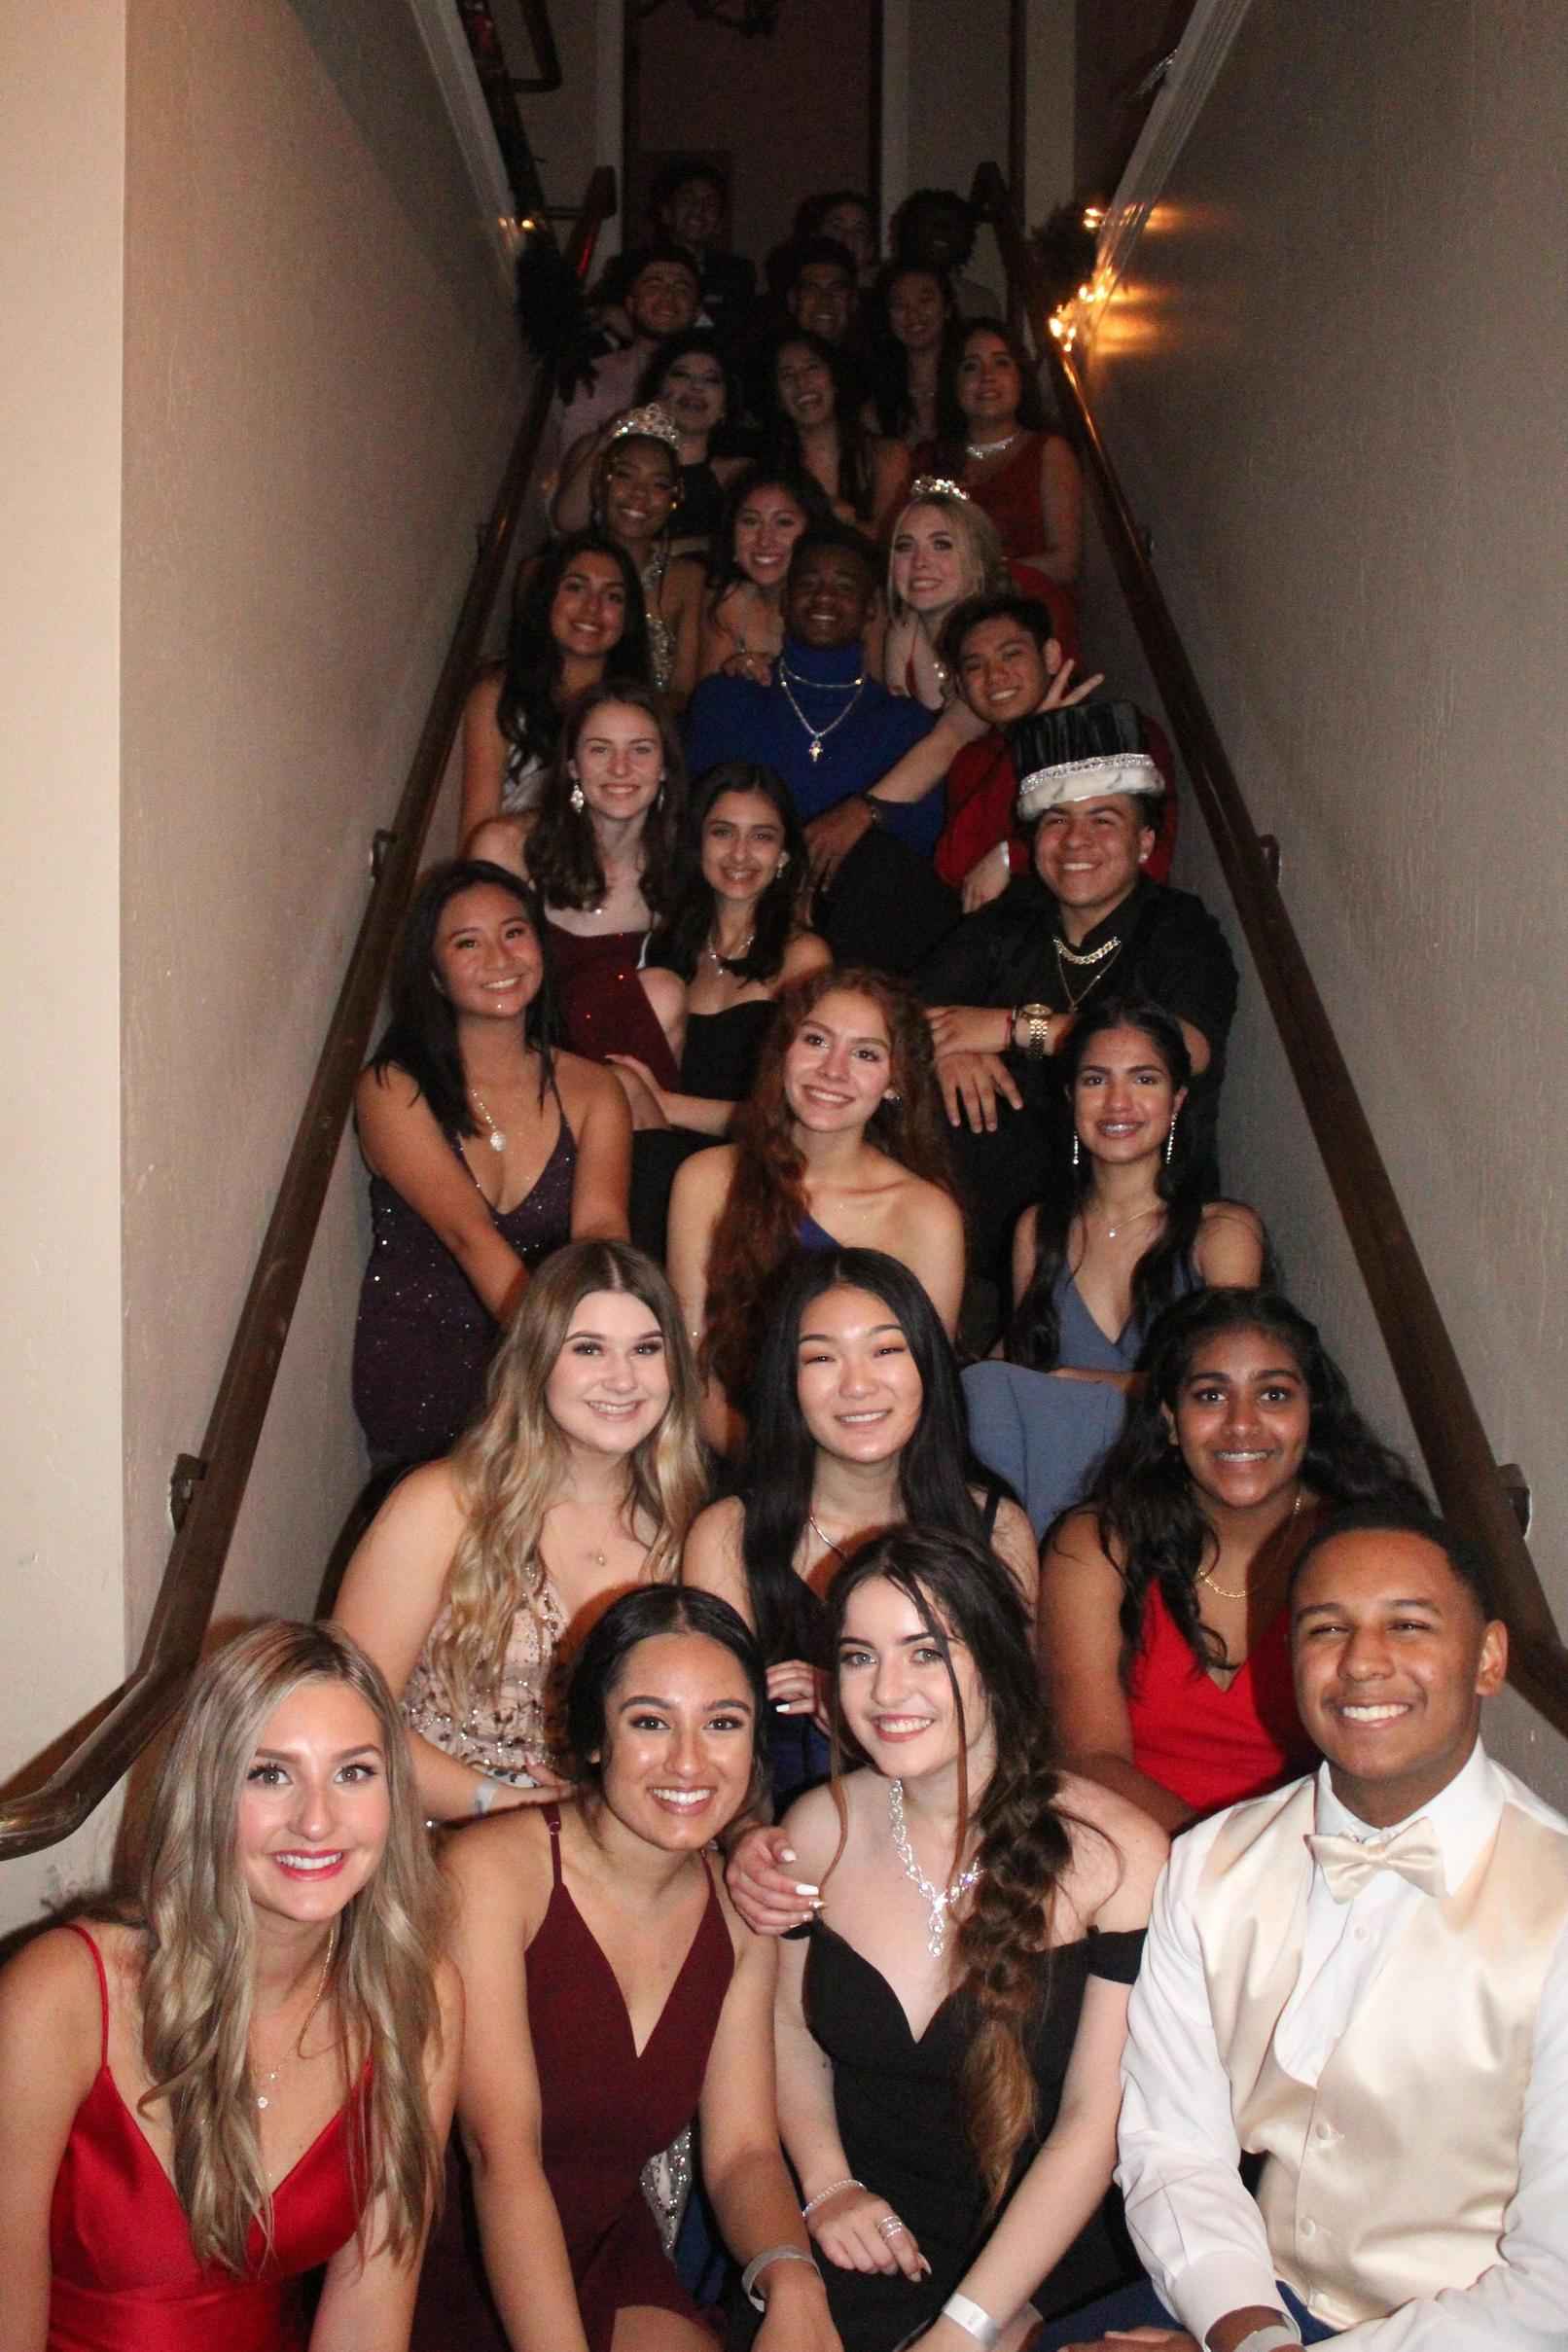 asb at Formal